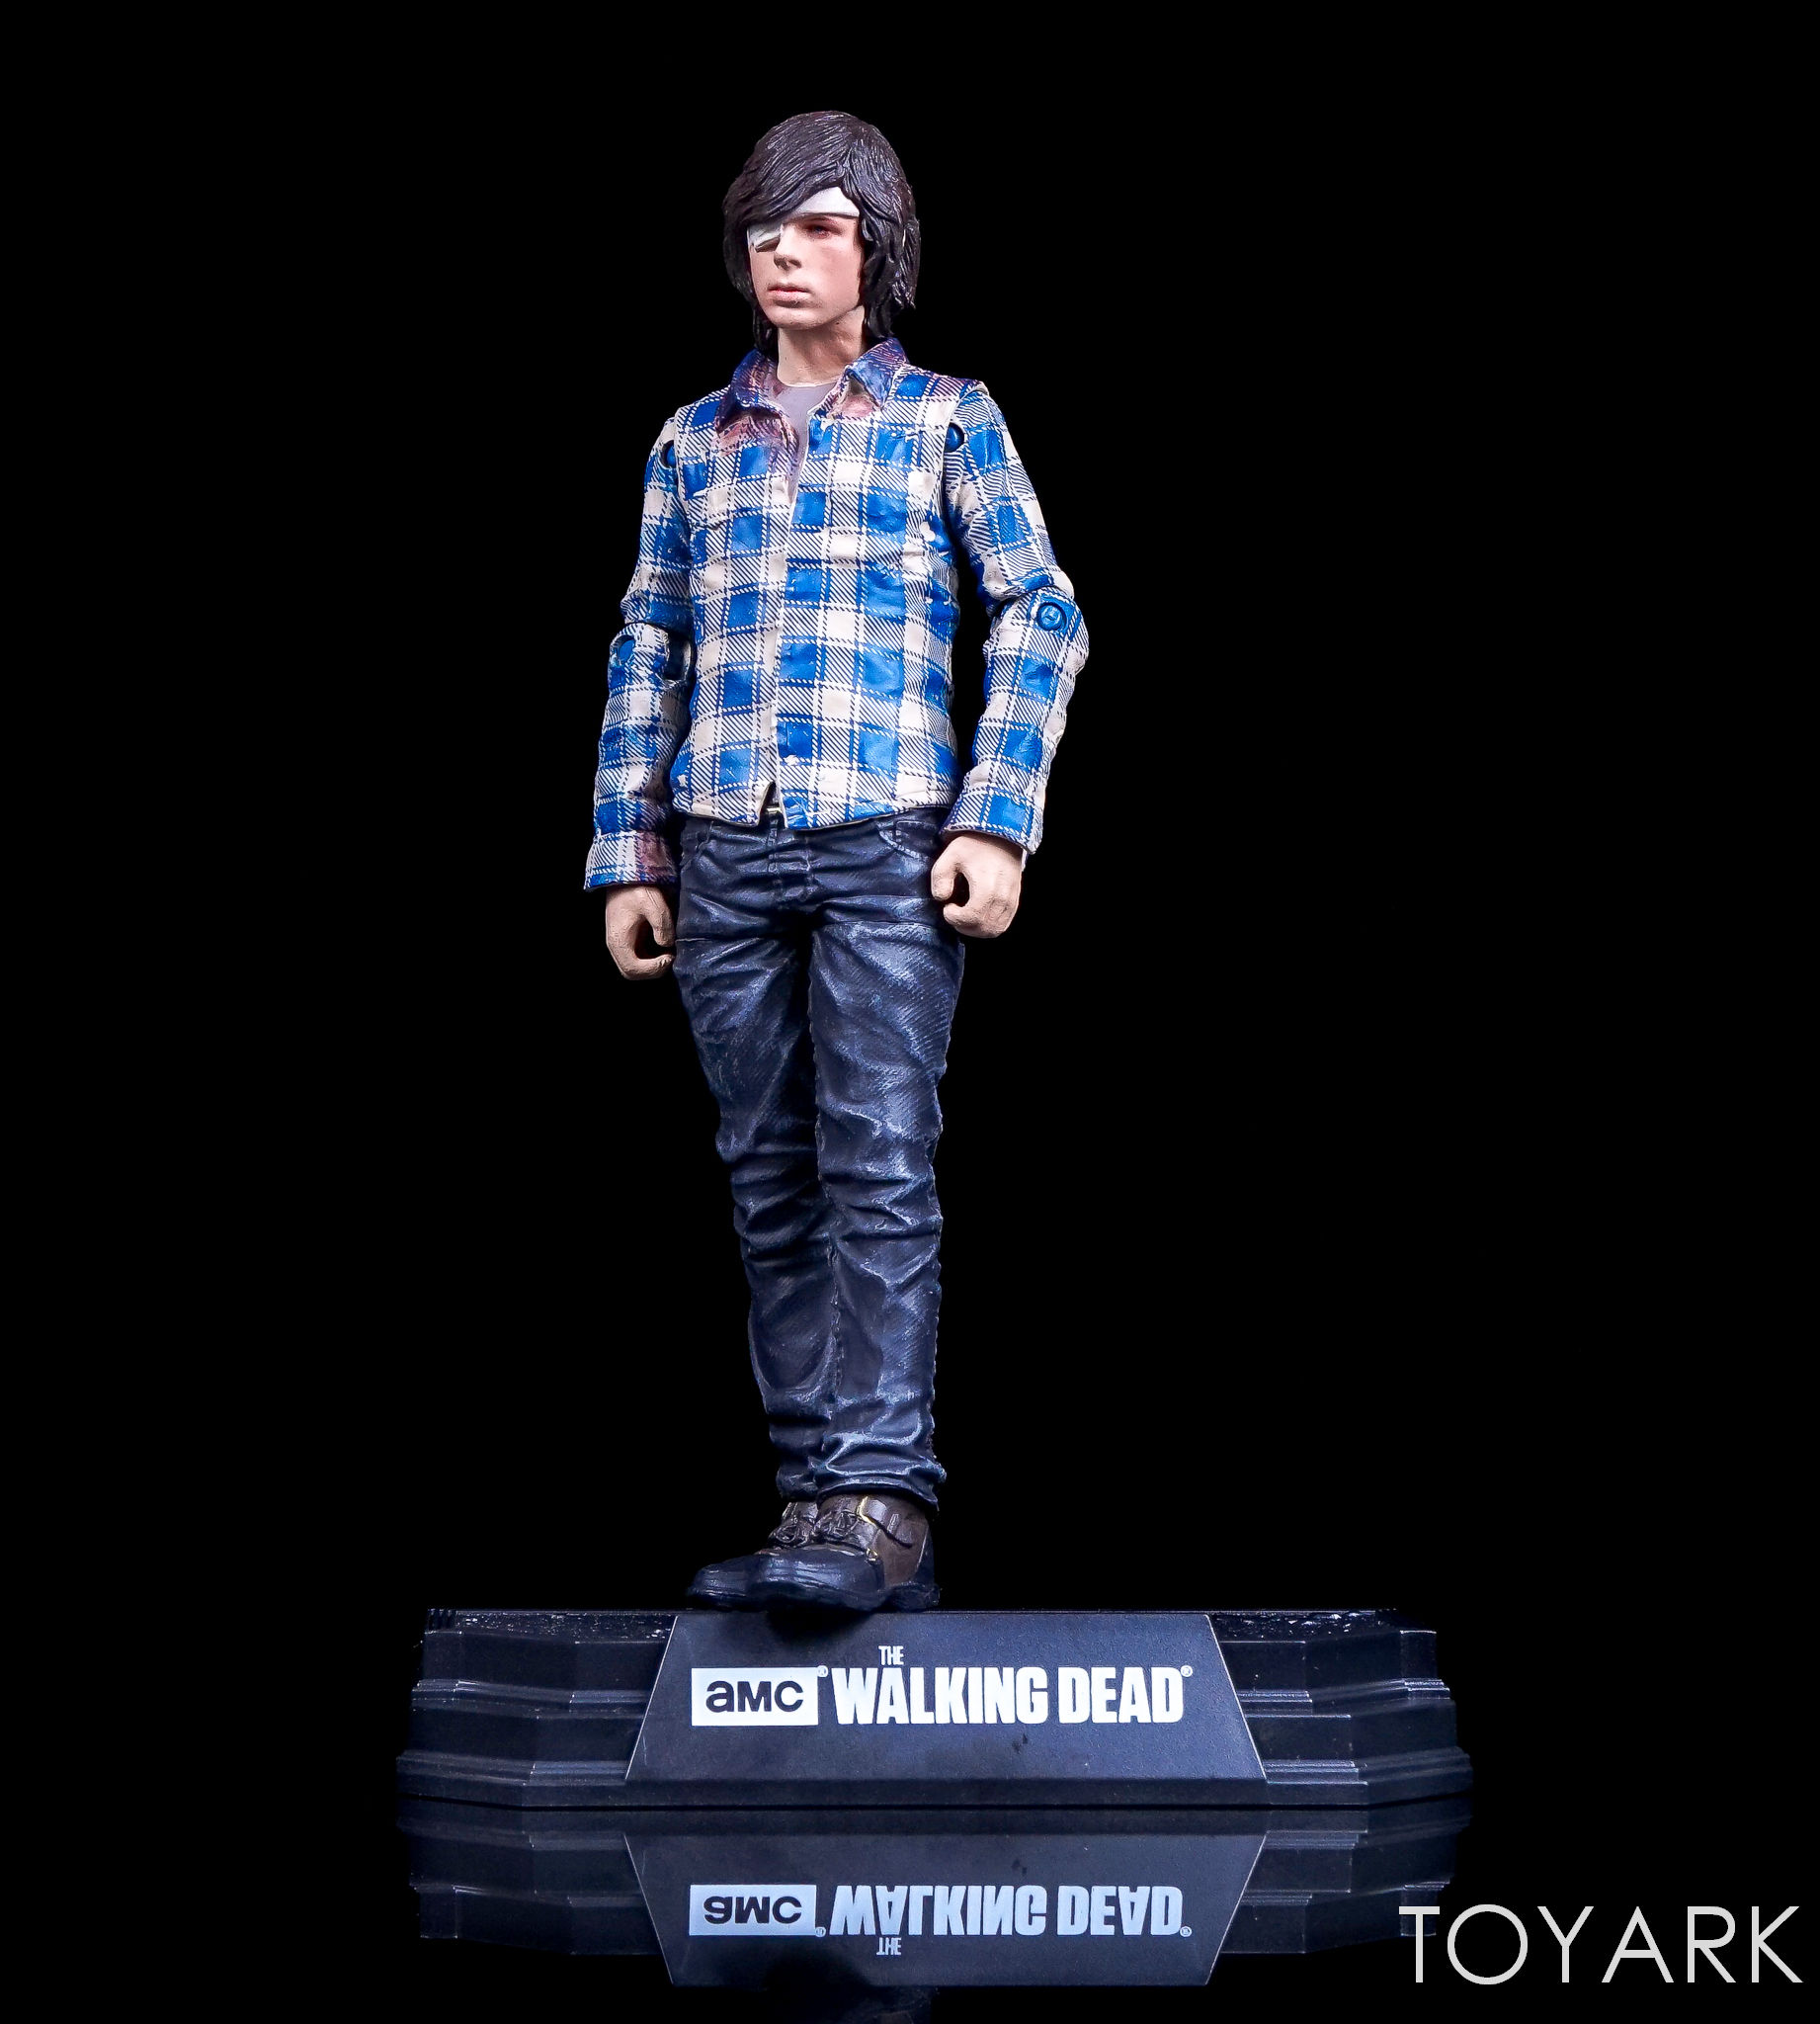 http://news.toyark.com/wp-content/uploads/sites/4/2017/03/McFarlane-Color-Tops-Walking-Dead-Carl-Grimes-005.jpg